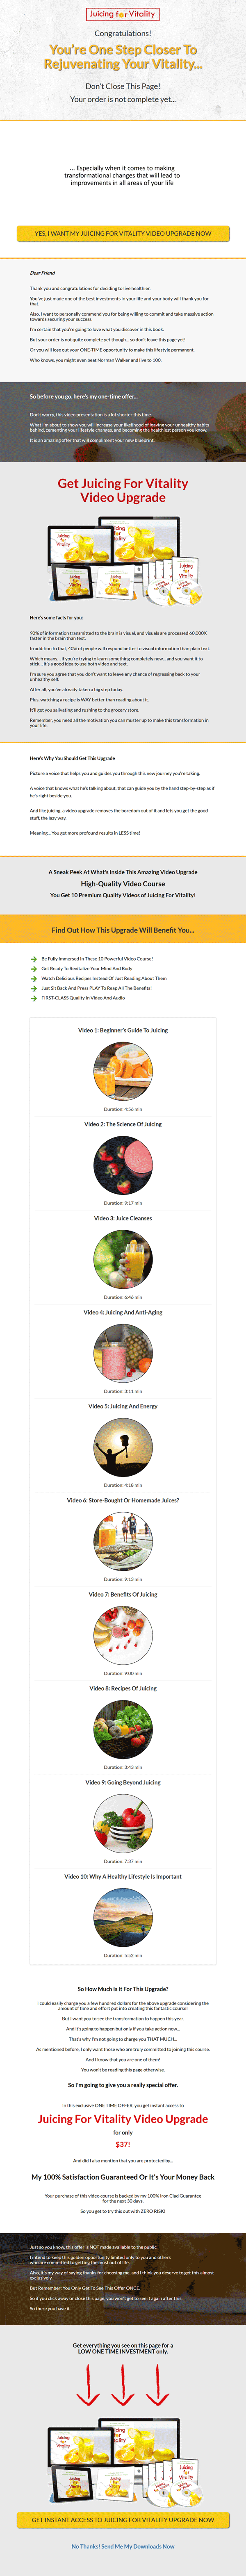 Juicing For Vitality Ebook and Videos